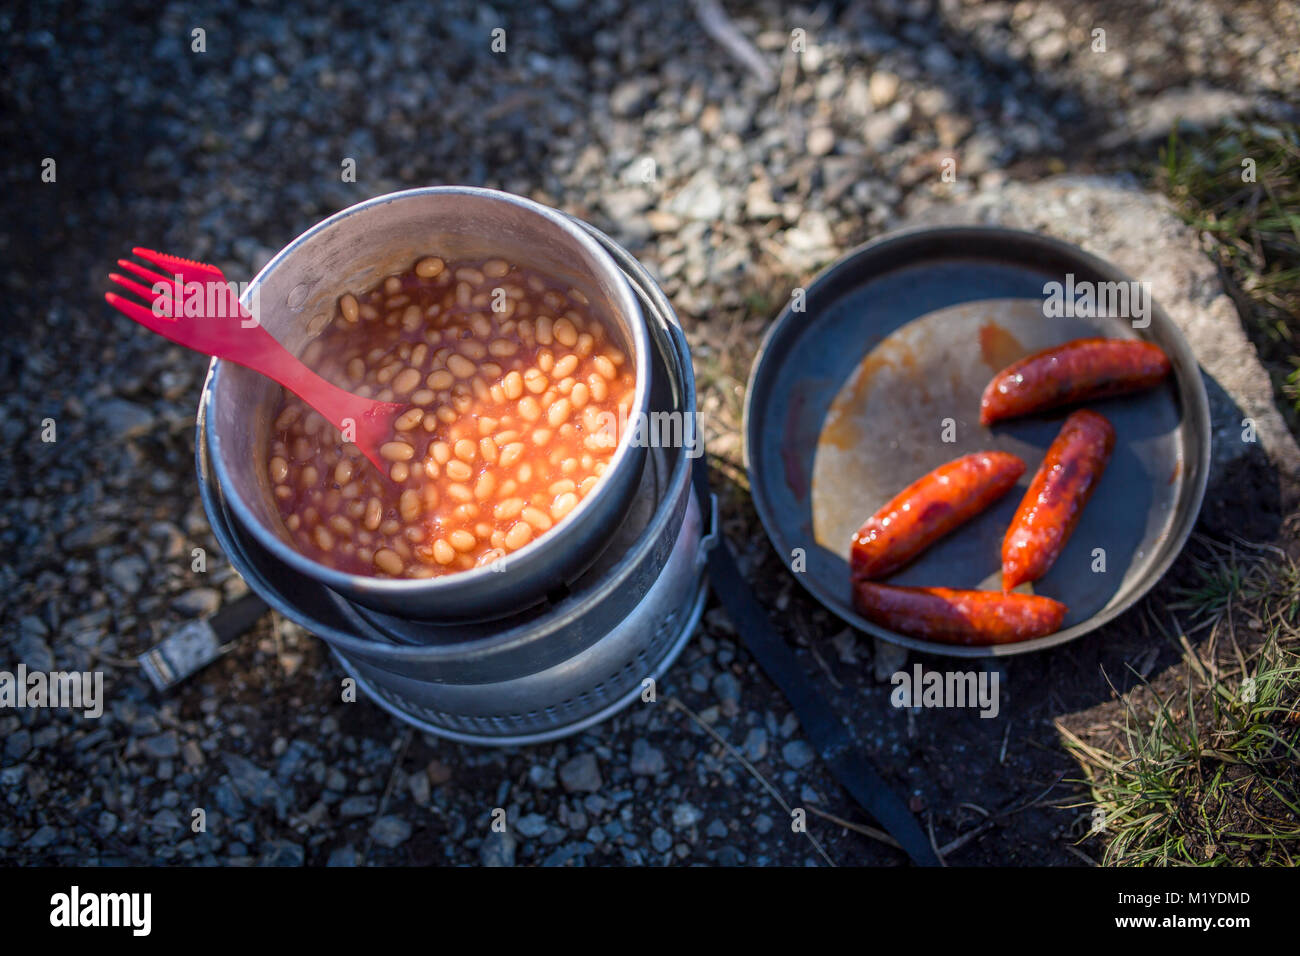 Baked beans in a saucepan and sausages in a frying pan on a camping kitchen on the ground. Partly sun and partly - Stock Image